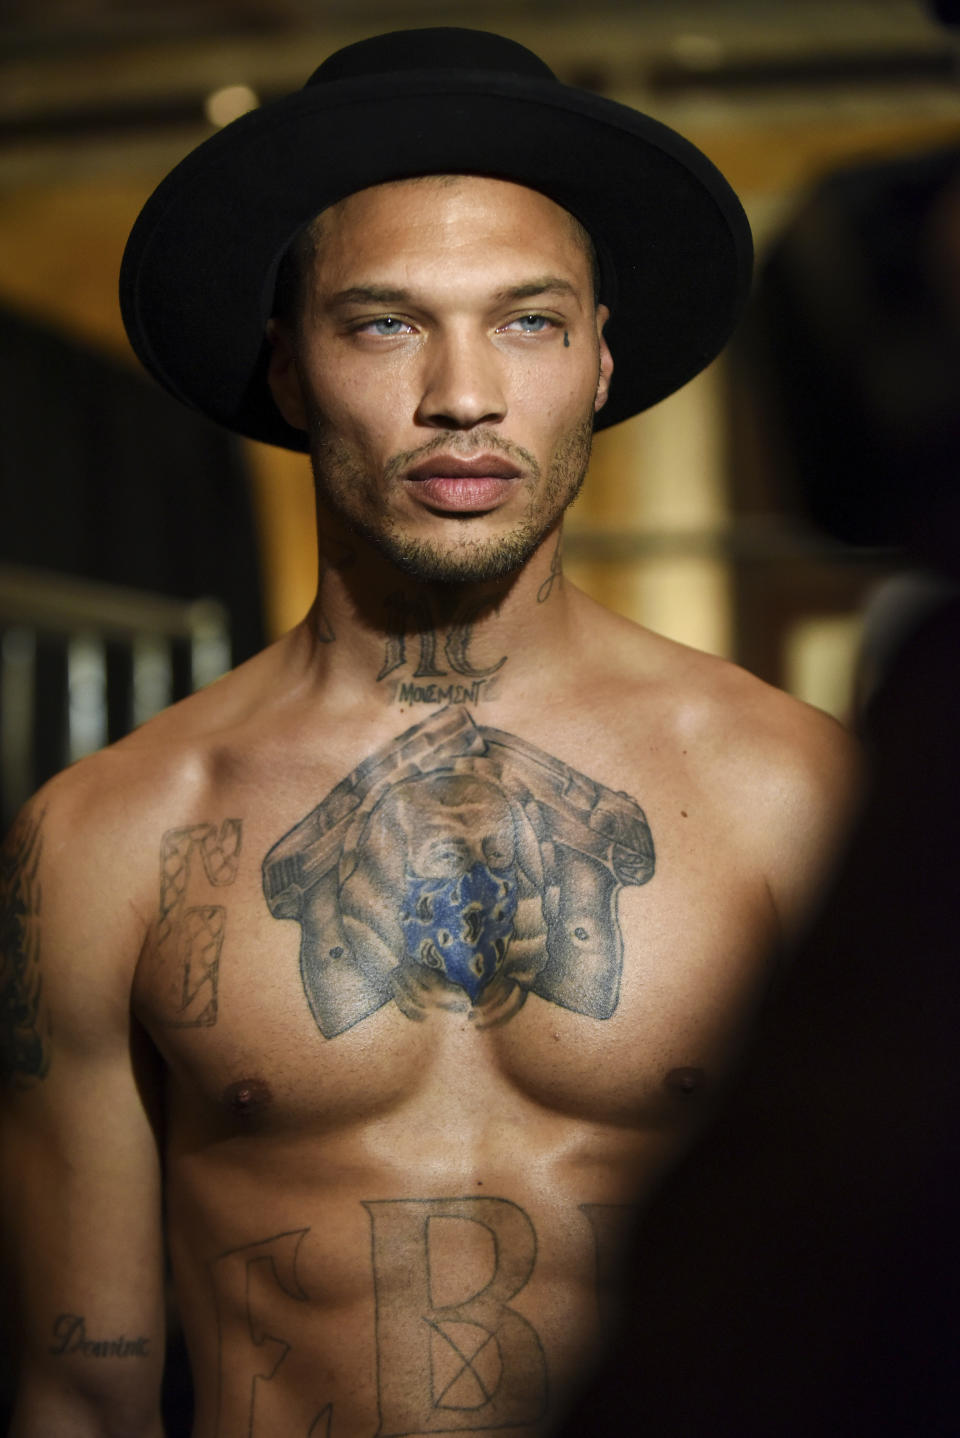 """Jeremy Meeks, the model who was referred to as """"the hot felon,"""" poses backstage before the Philipp Plein fashion show, Monday, Feb. 13, 2017, in New York. (AP Photo/Diane Bondareff)"""